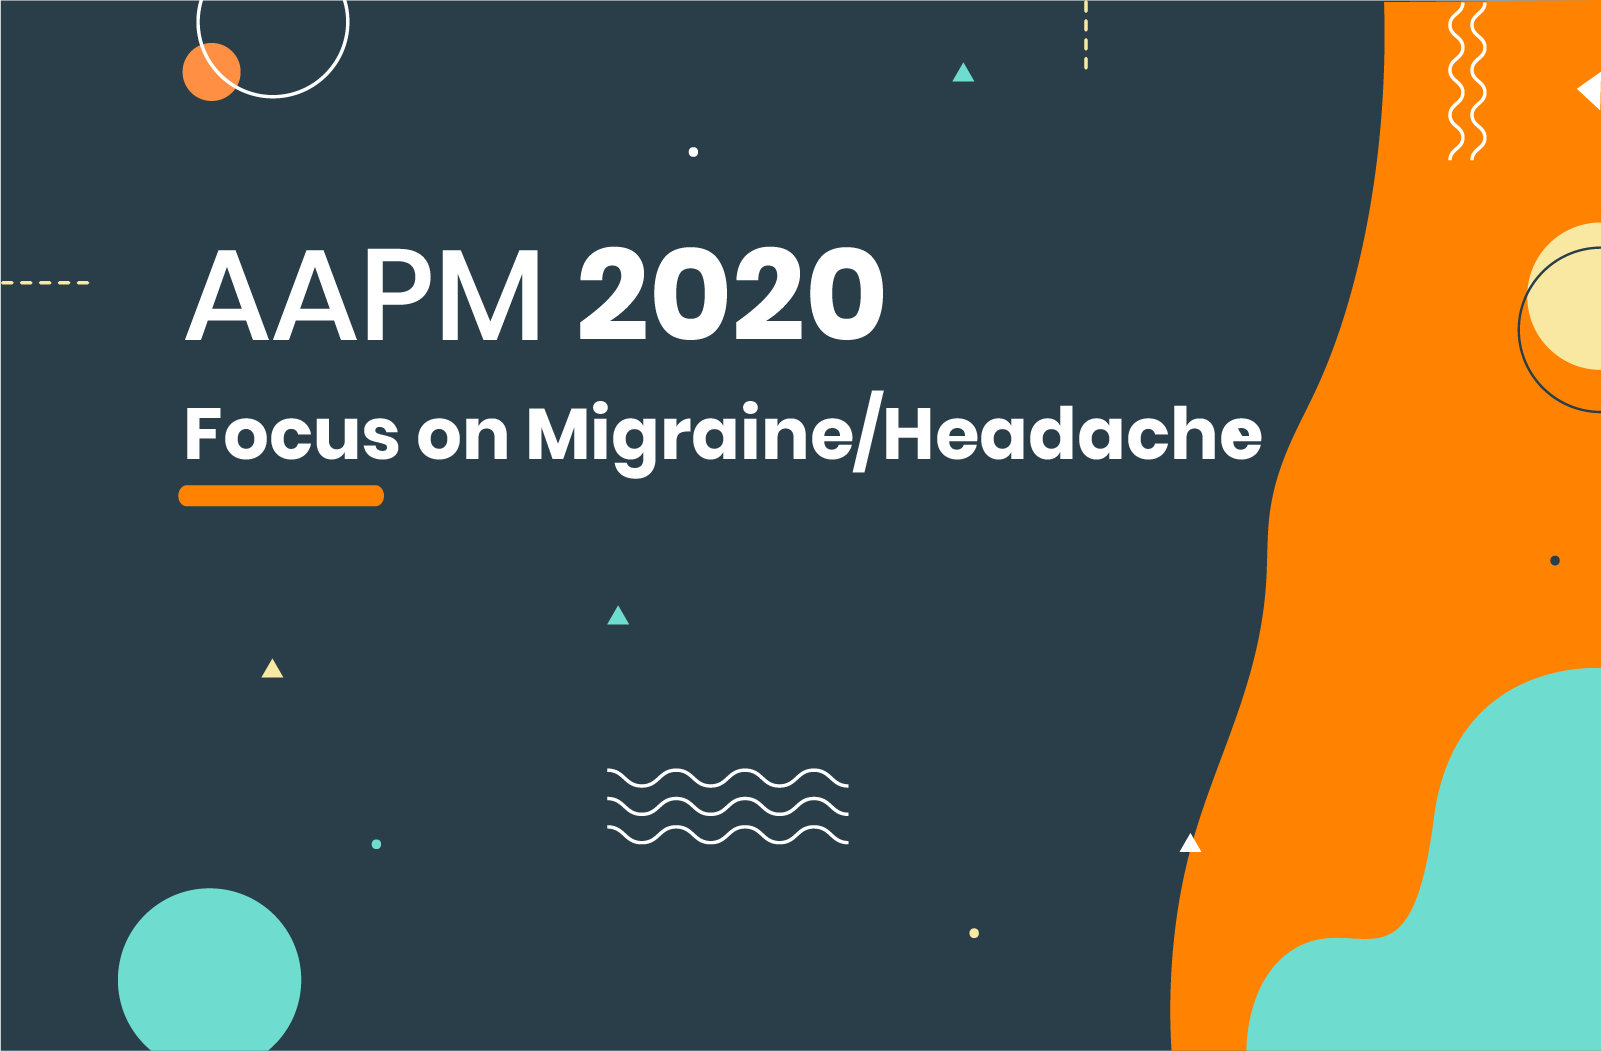 Treating migraine was a major topic at AAPM 2020 - Here's how migraine treaters perceive the anti-CGRPs